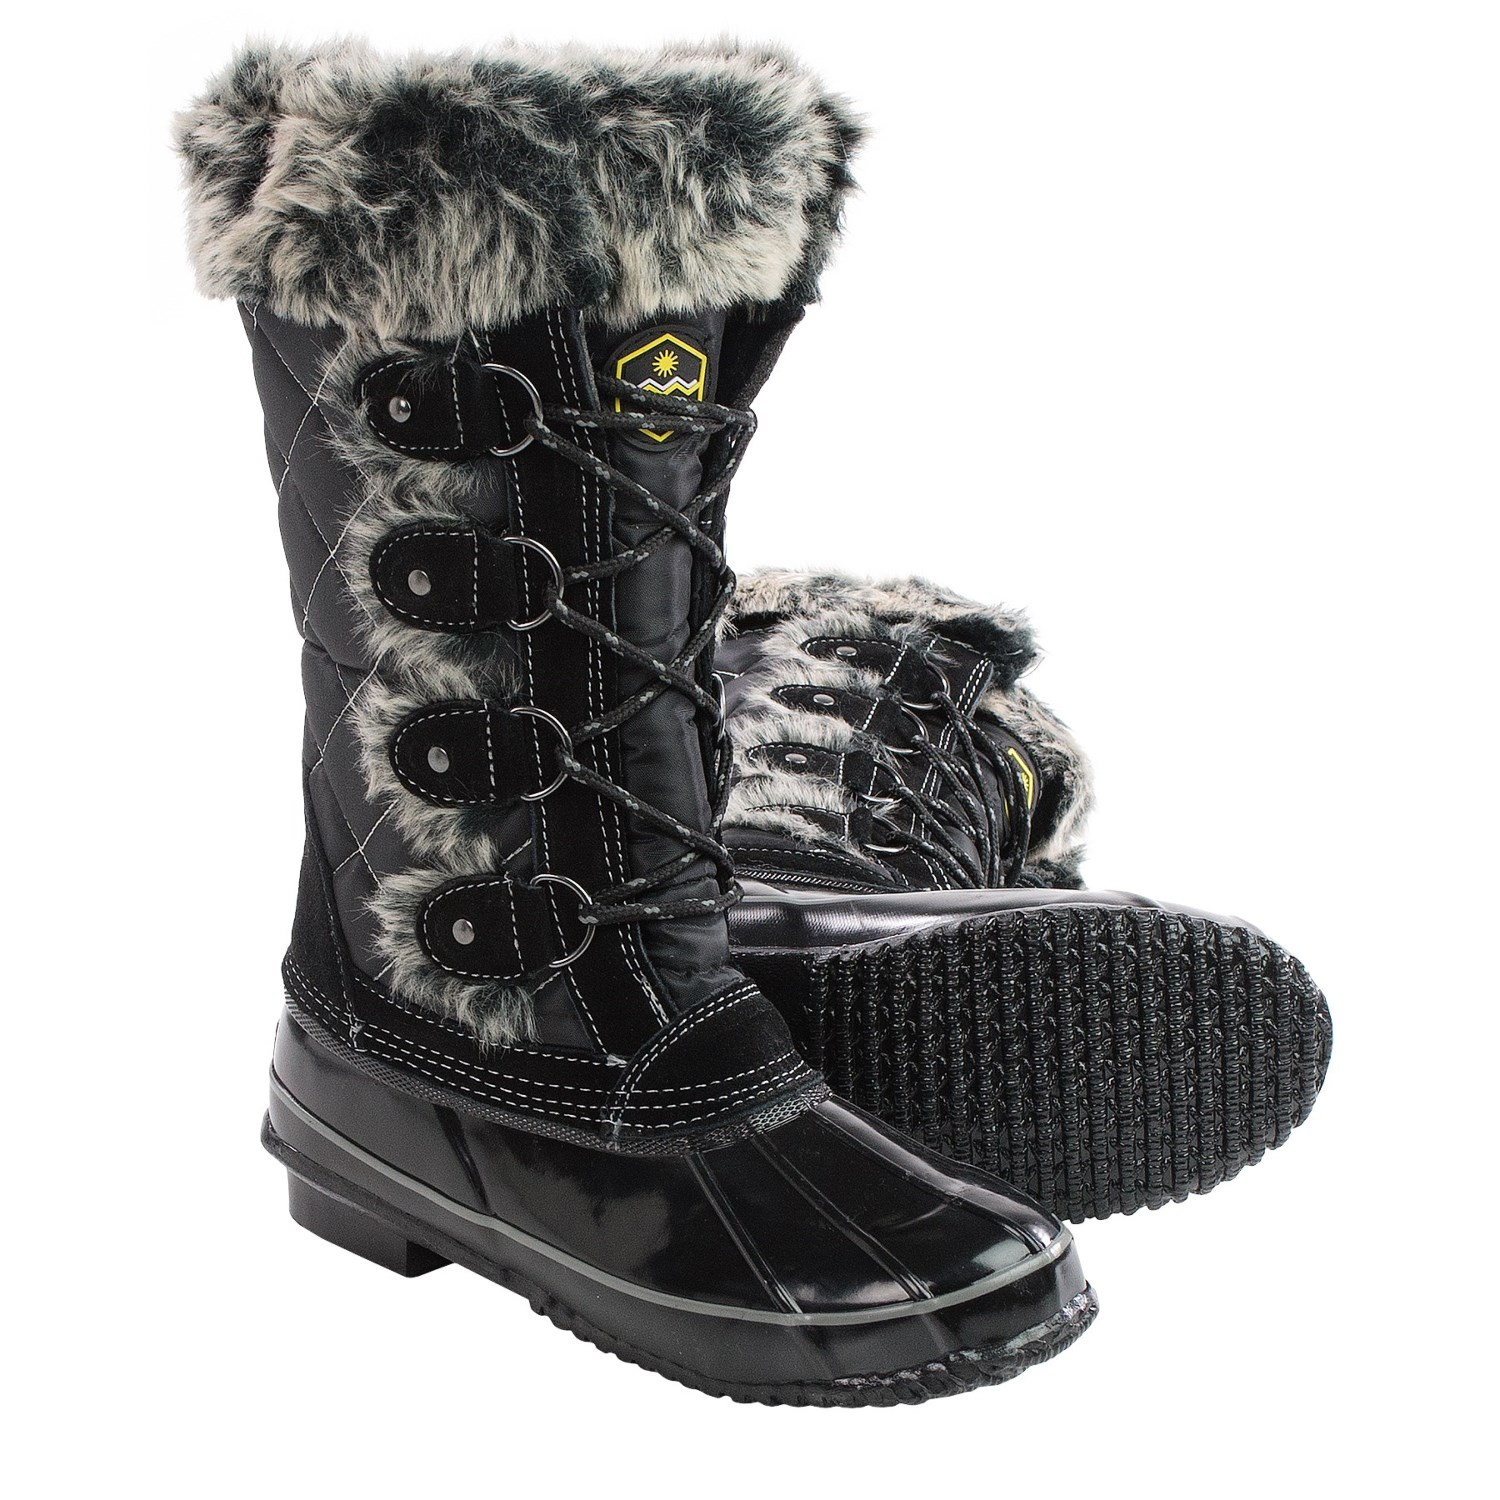 Khombu Jandice Snow Boots (For Women) - Save 32%